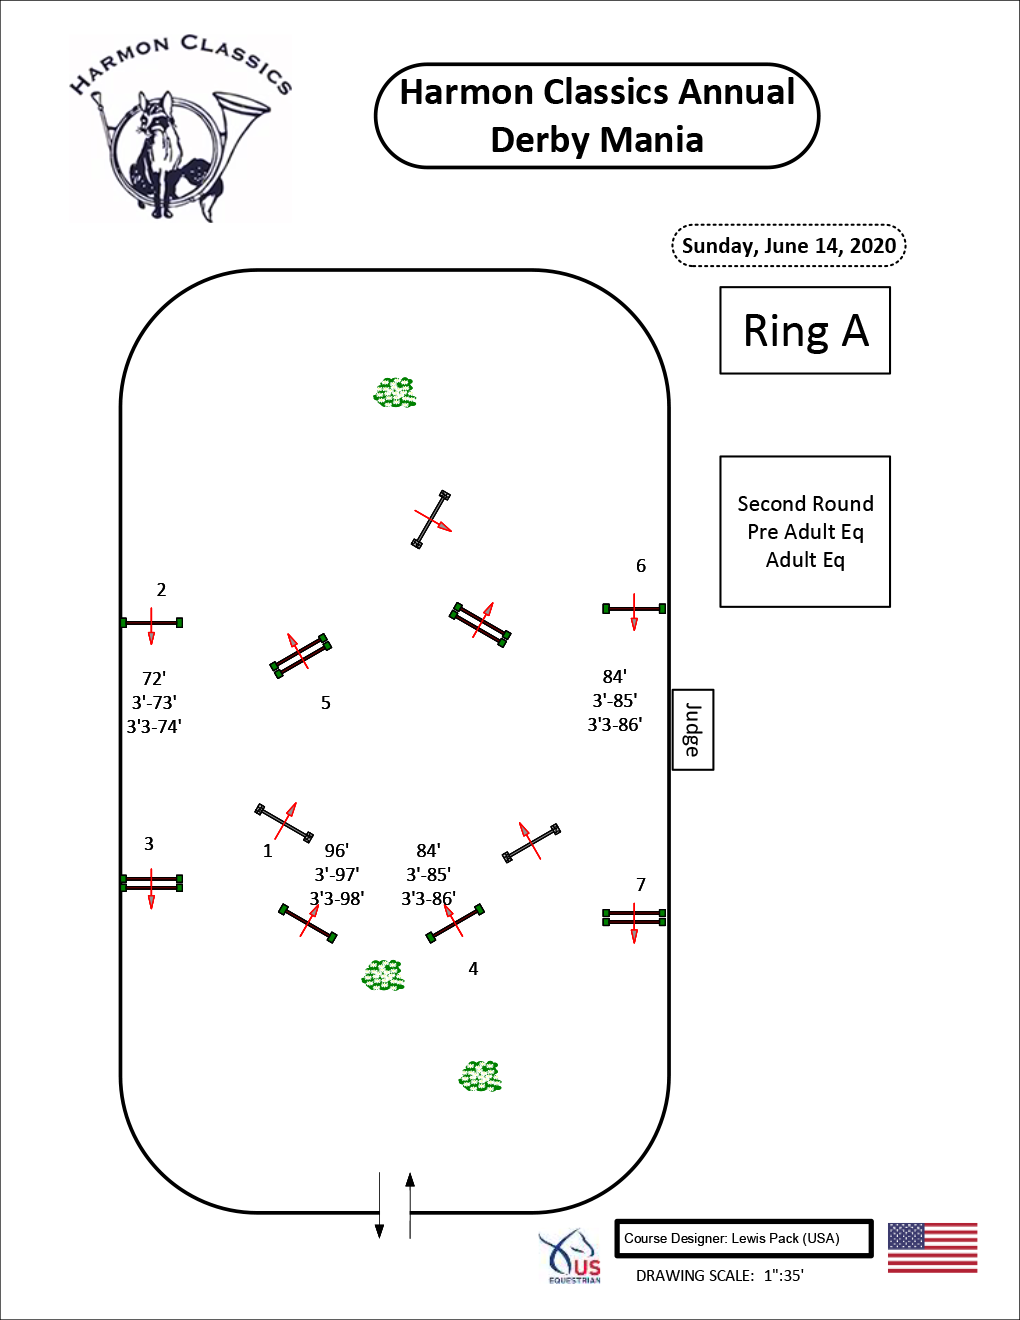 Ring-A-Sunday6-14-Second-Round-Pre-Adult-Equitation-and-Adult-Equitation-Harmon-Classics-Derby-Mania